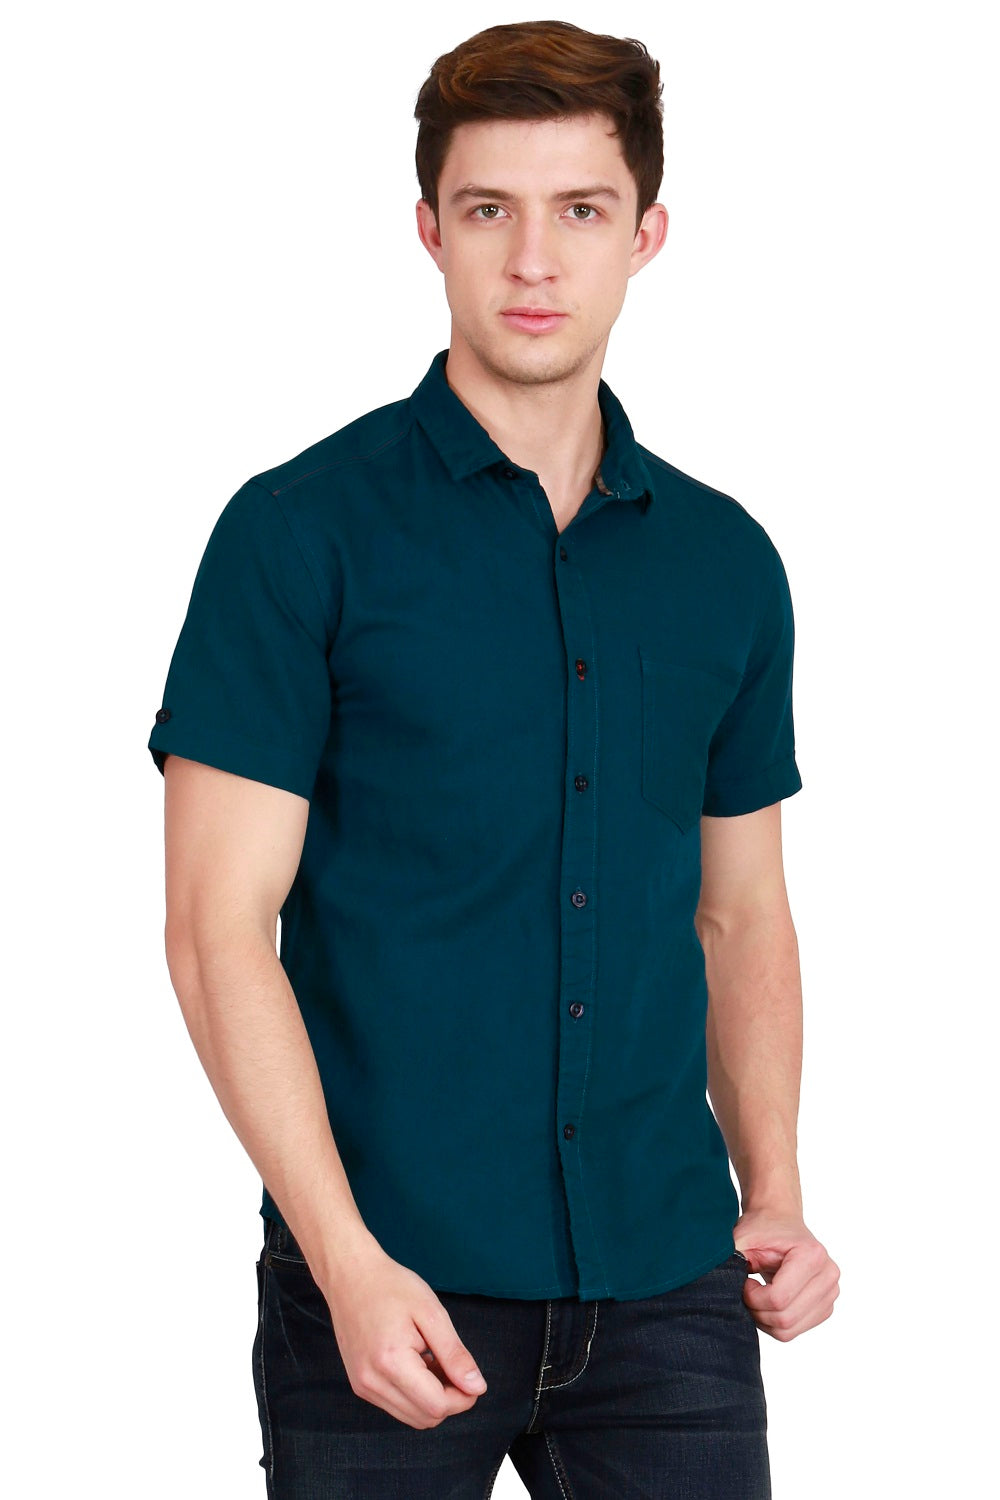 IMYOUNG Men's Solid Dark Green Cotton Linen Casual Shirt